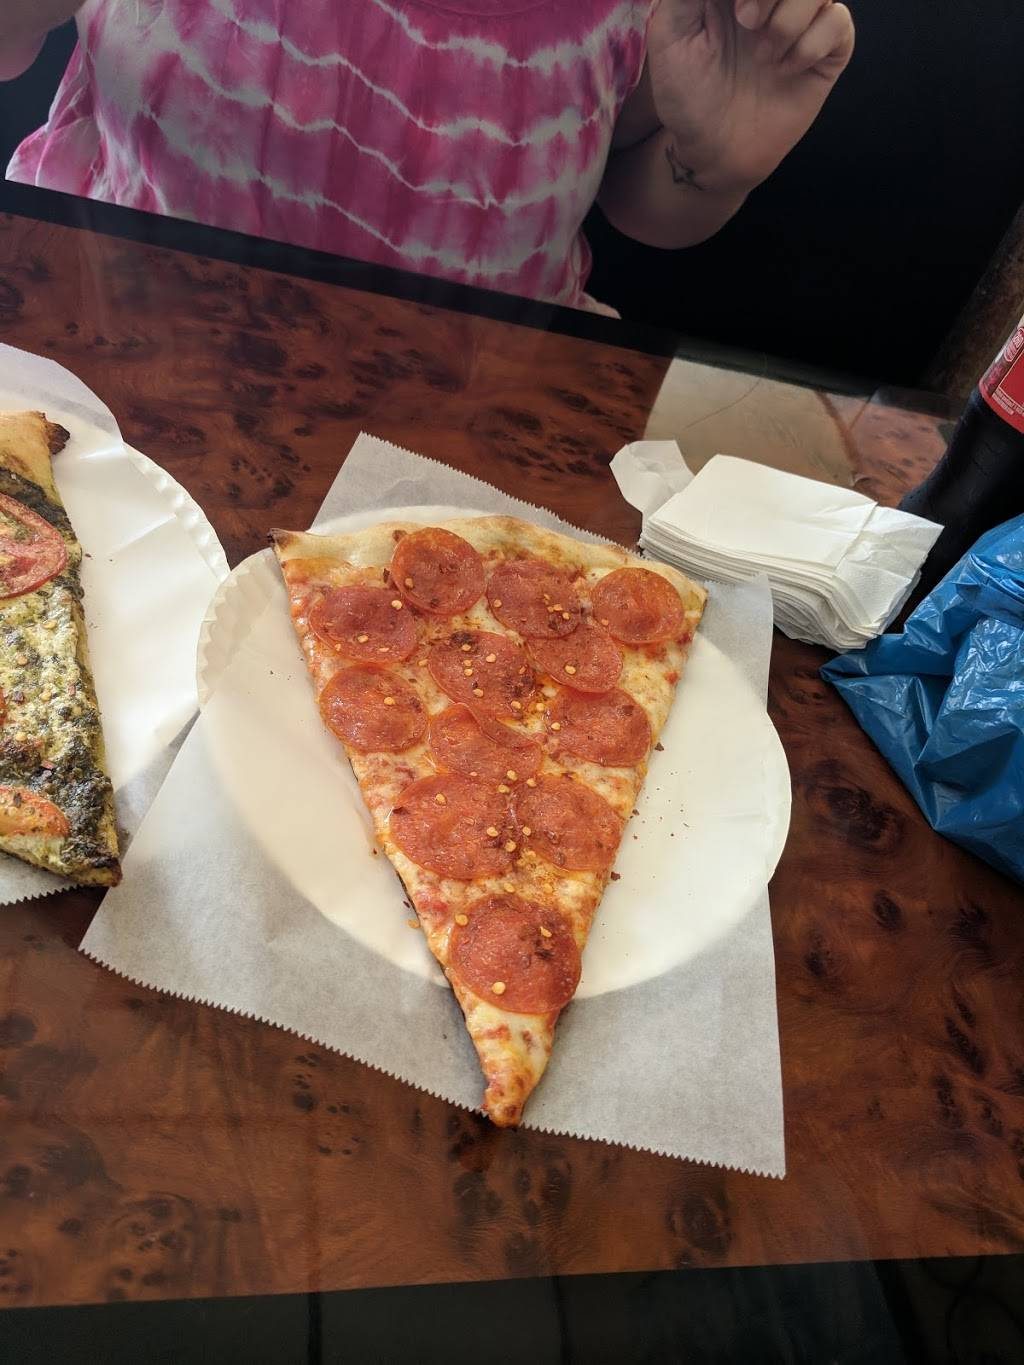 Tonys Pizza | restaurant | 4189 White Plains Rd, Bronx, NY 10466, USA | 7185196043 OR +1 718-519-6043